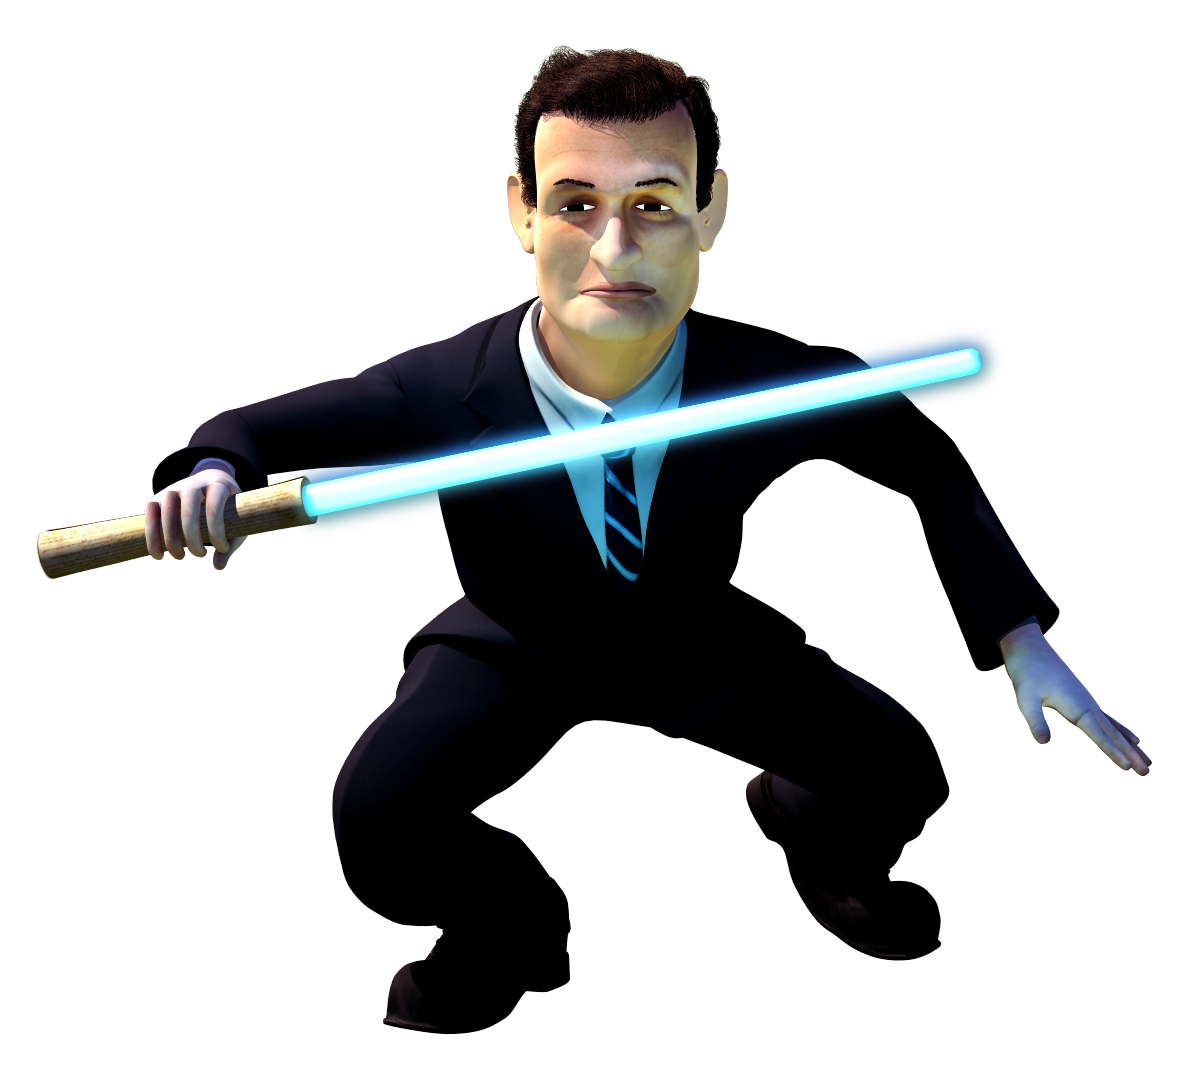 The consitution strikes back. Ted cruz png image transparent